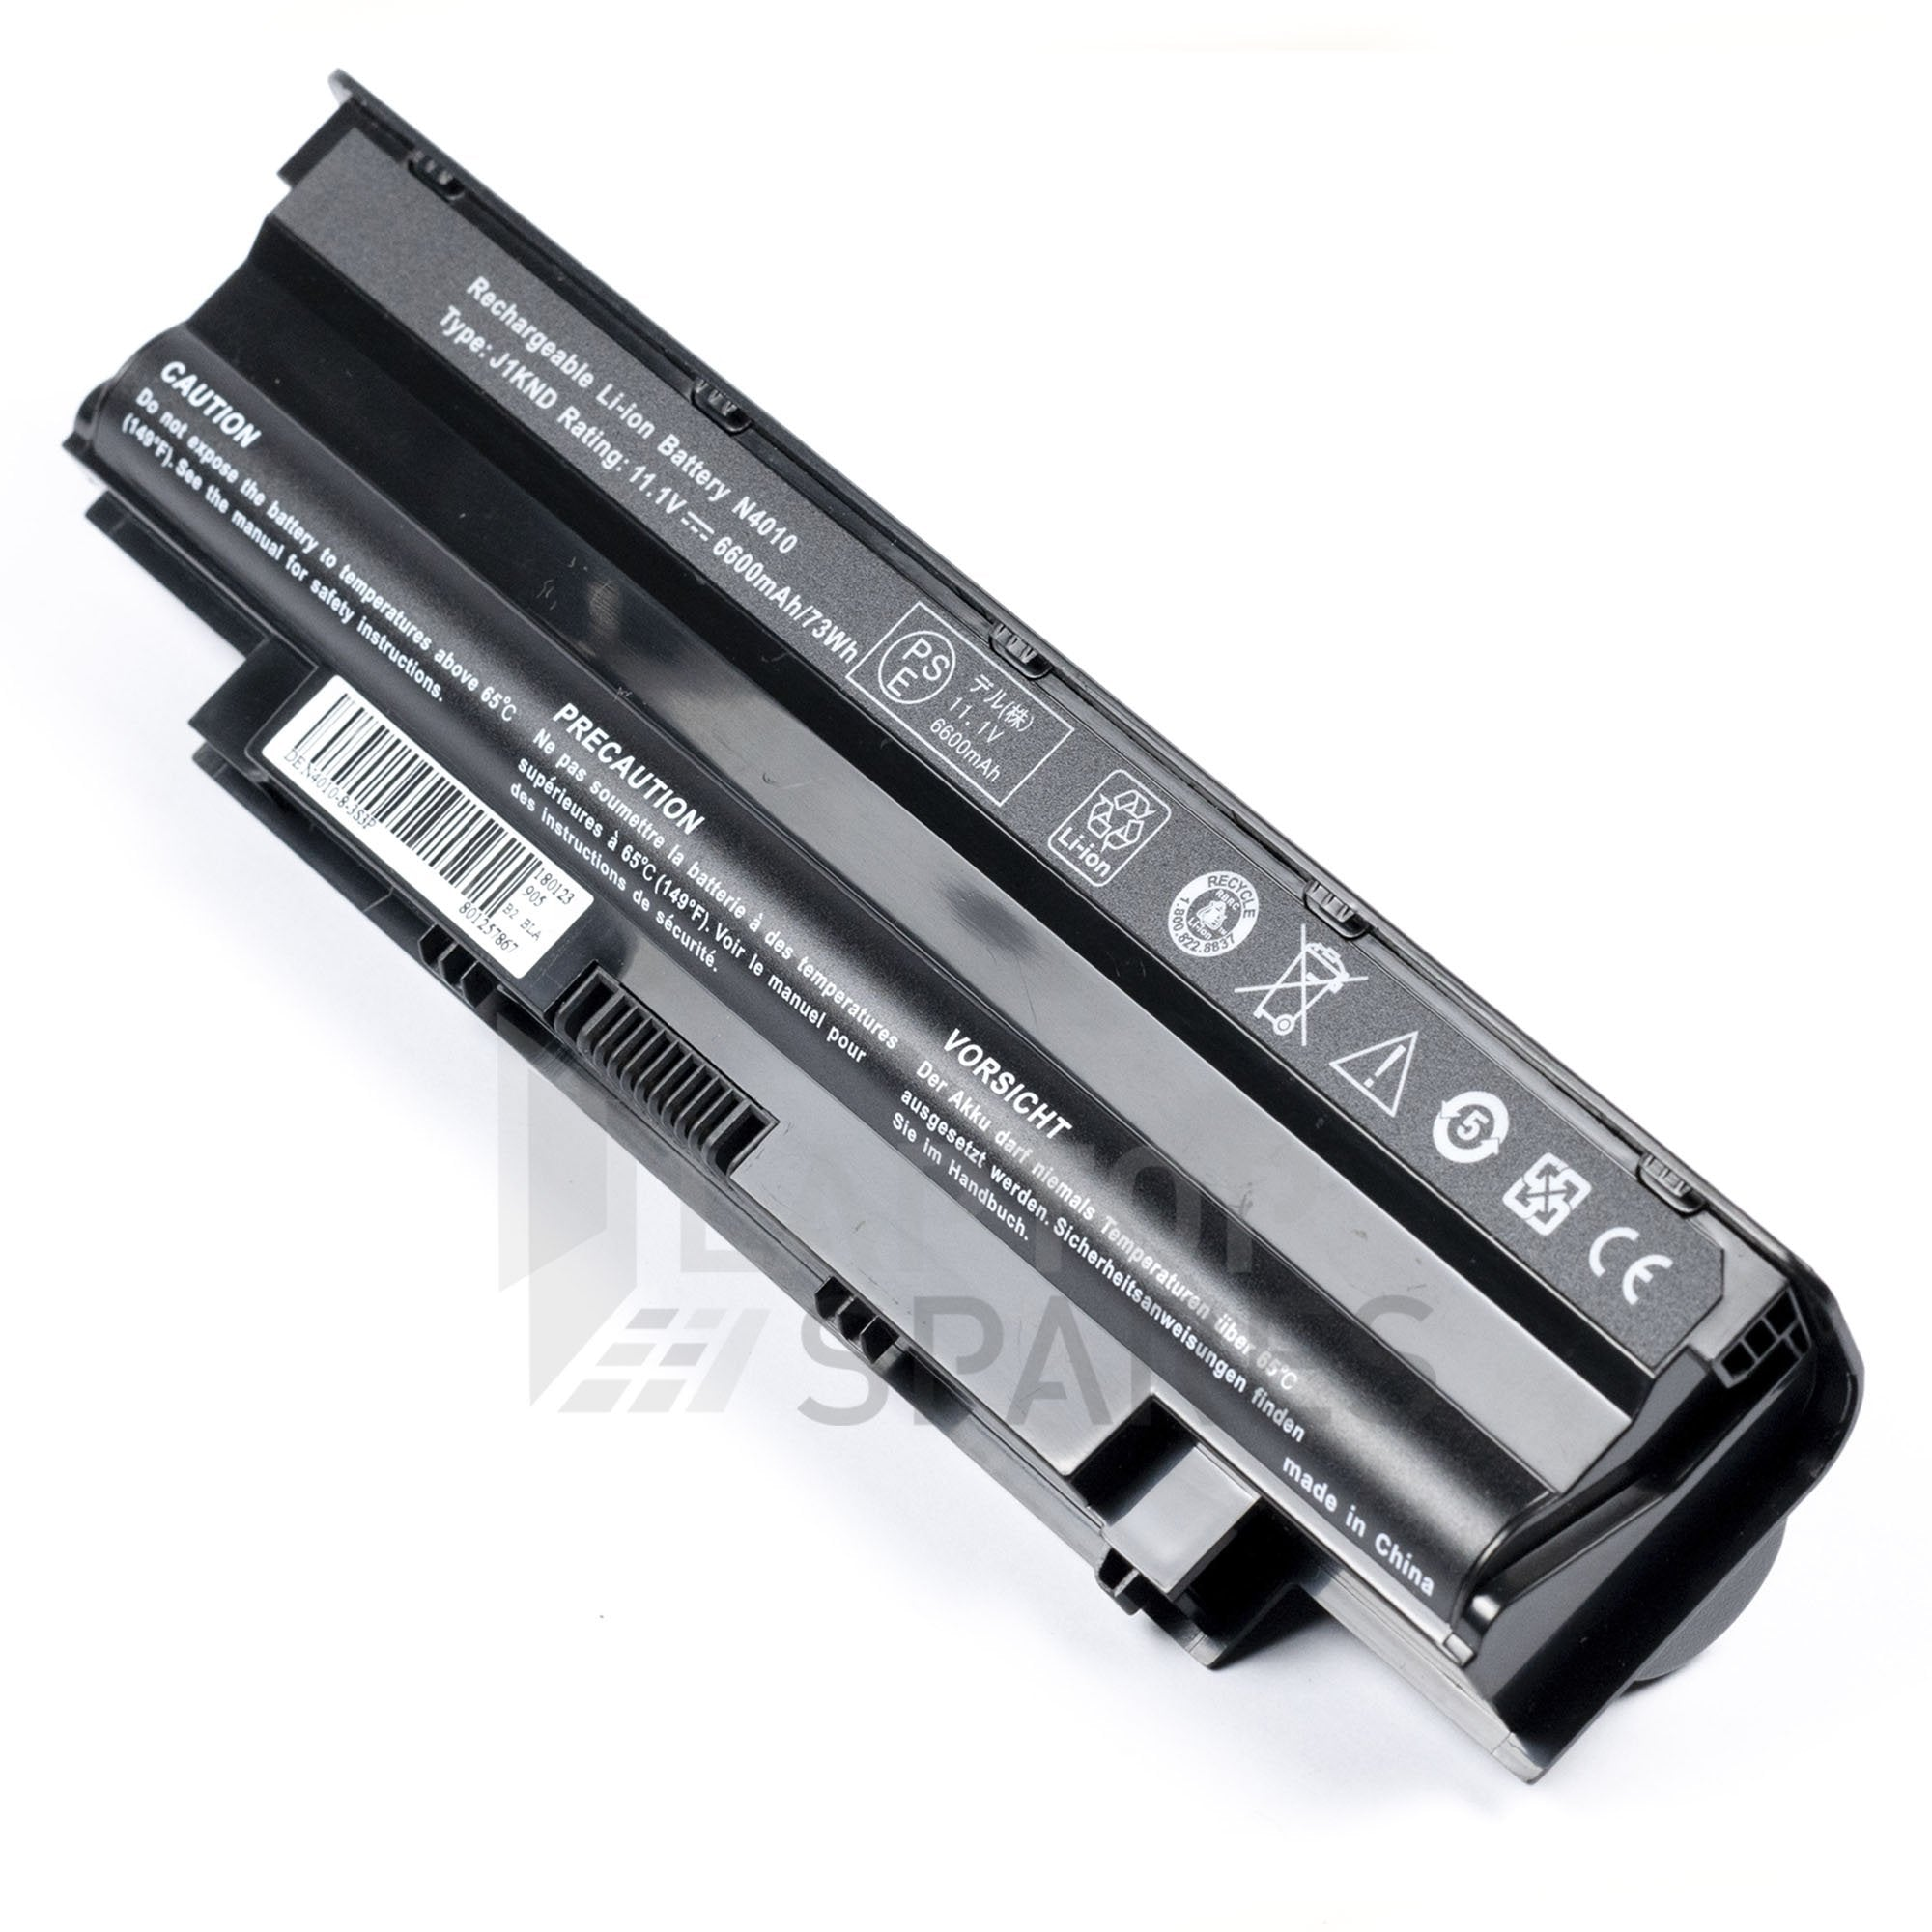 Dell Inspiron 14R 4010-D480 6600mAh 9 Cell Battery